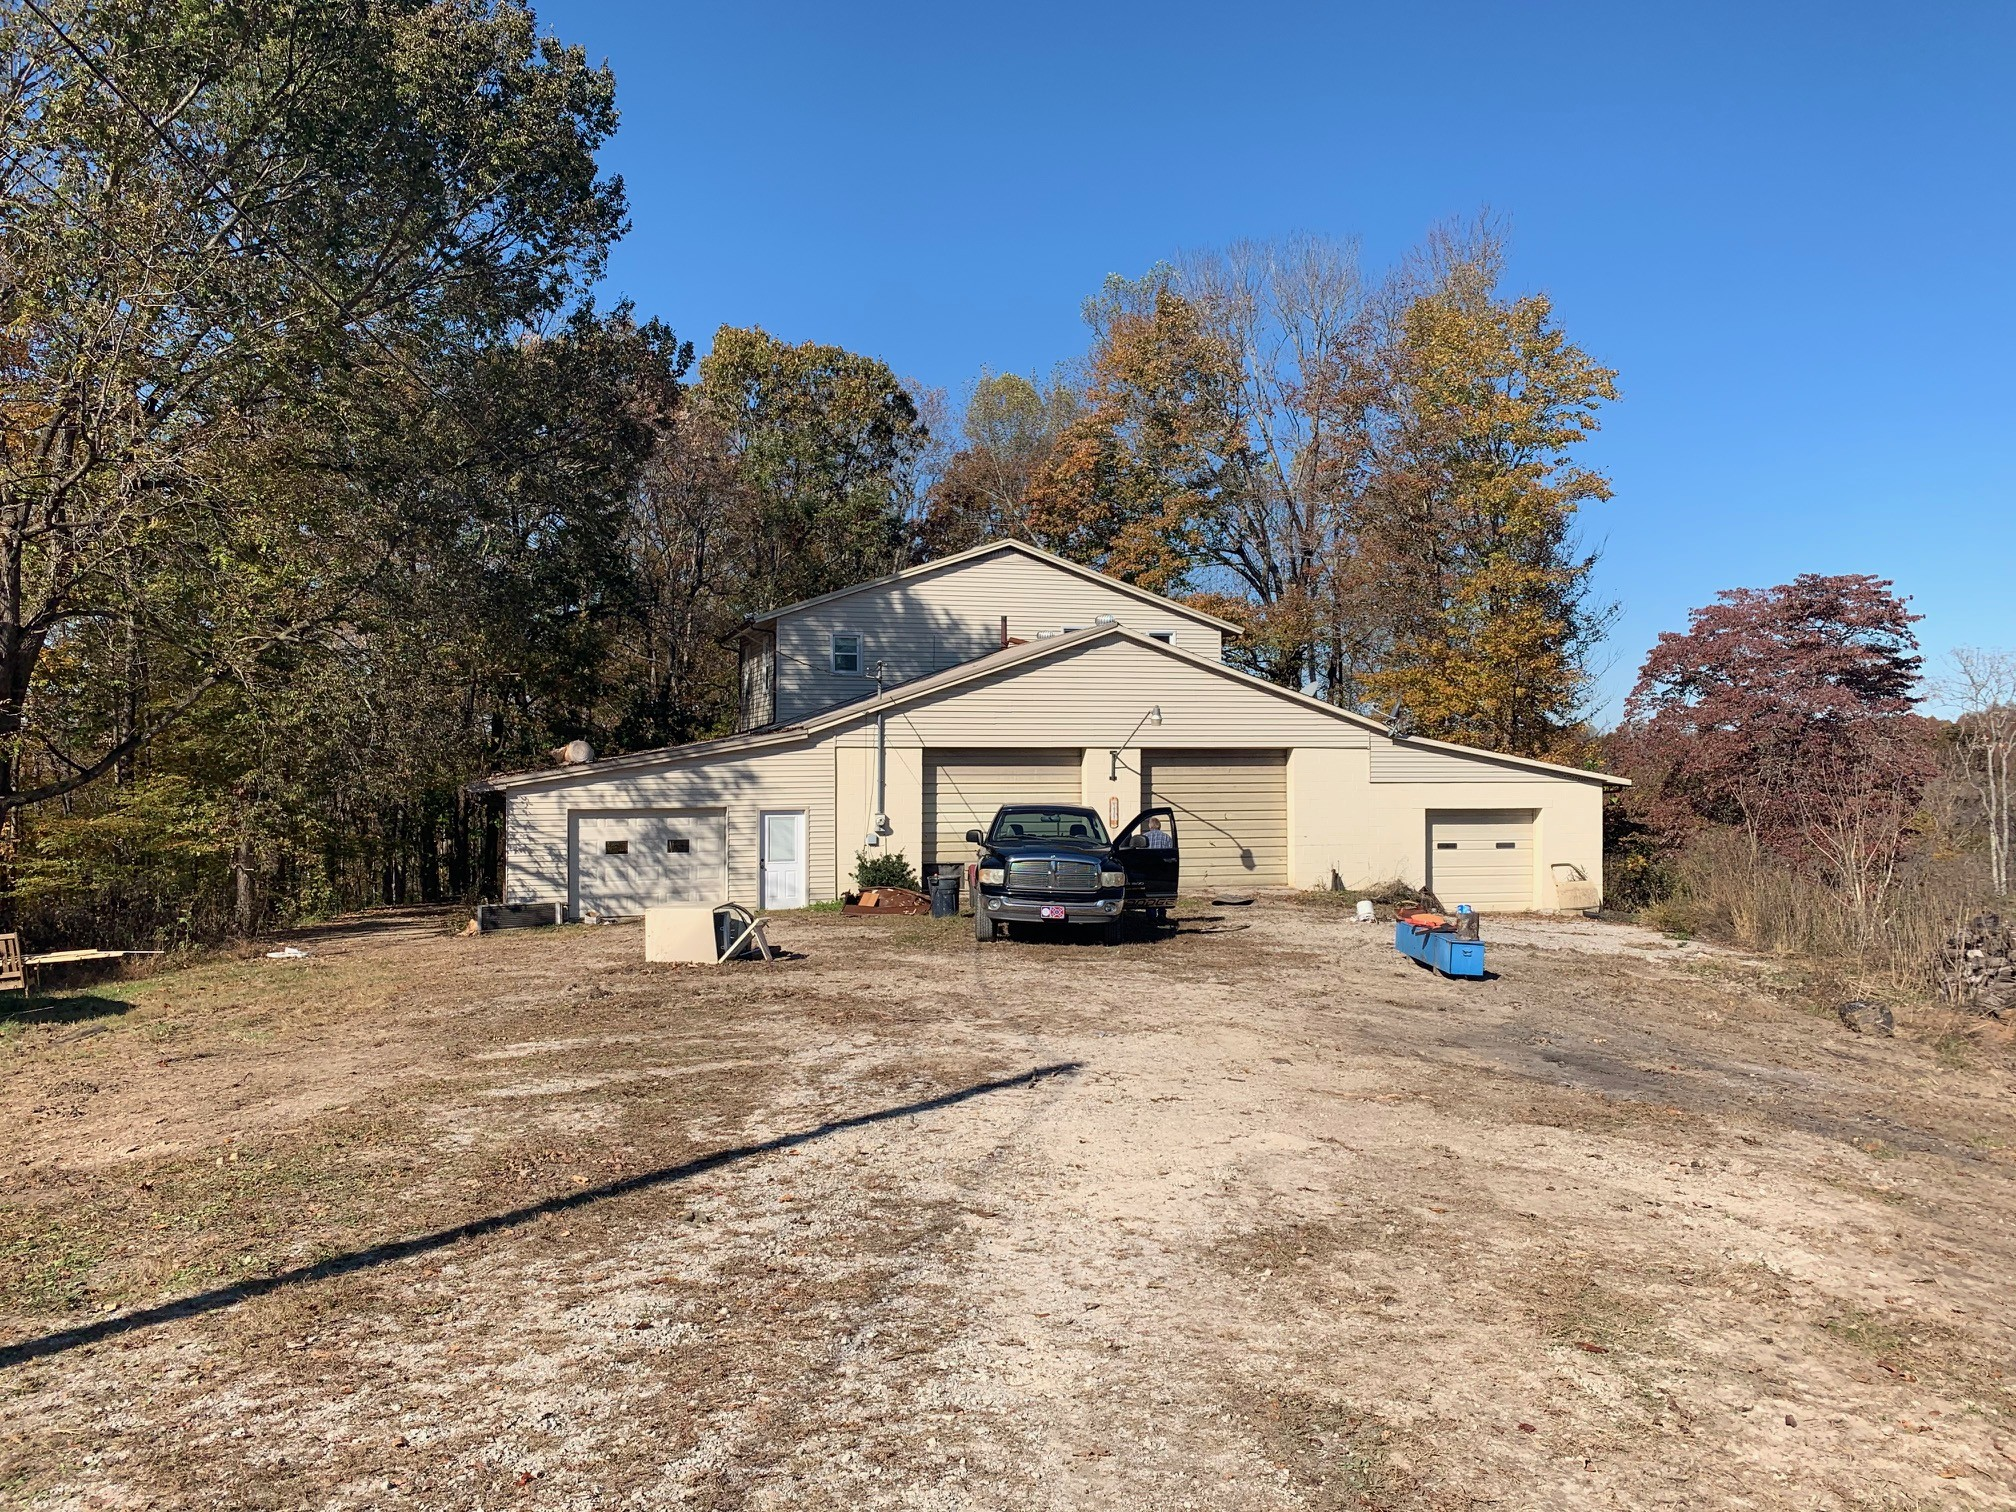 506 Langford Hill Rd, SE, Cookeville, TN 38501 - Cookeville, TN real estate listing